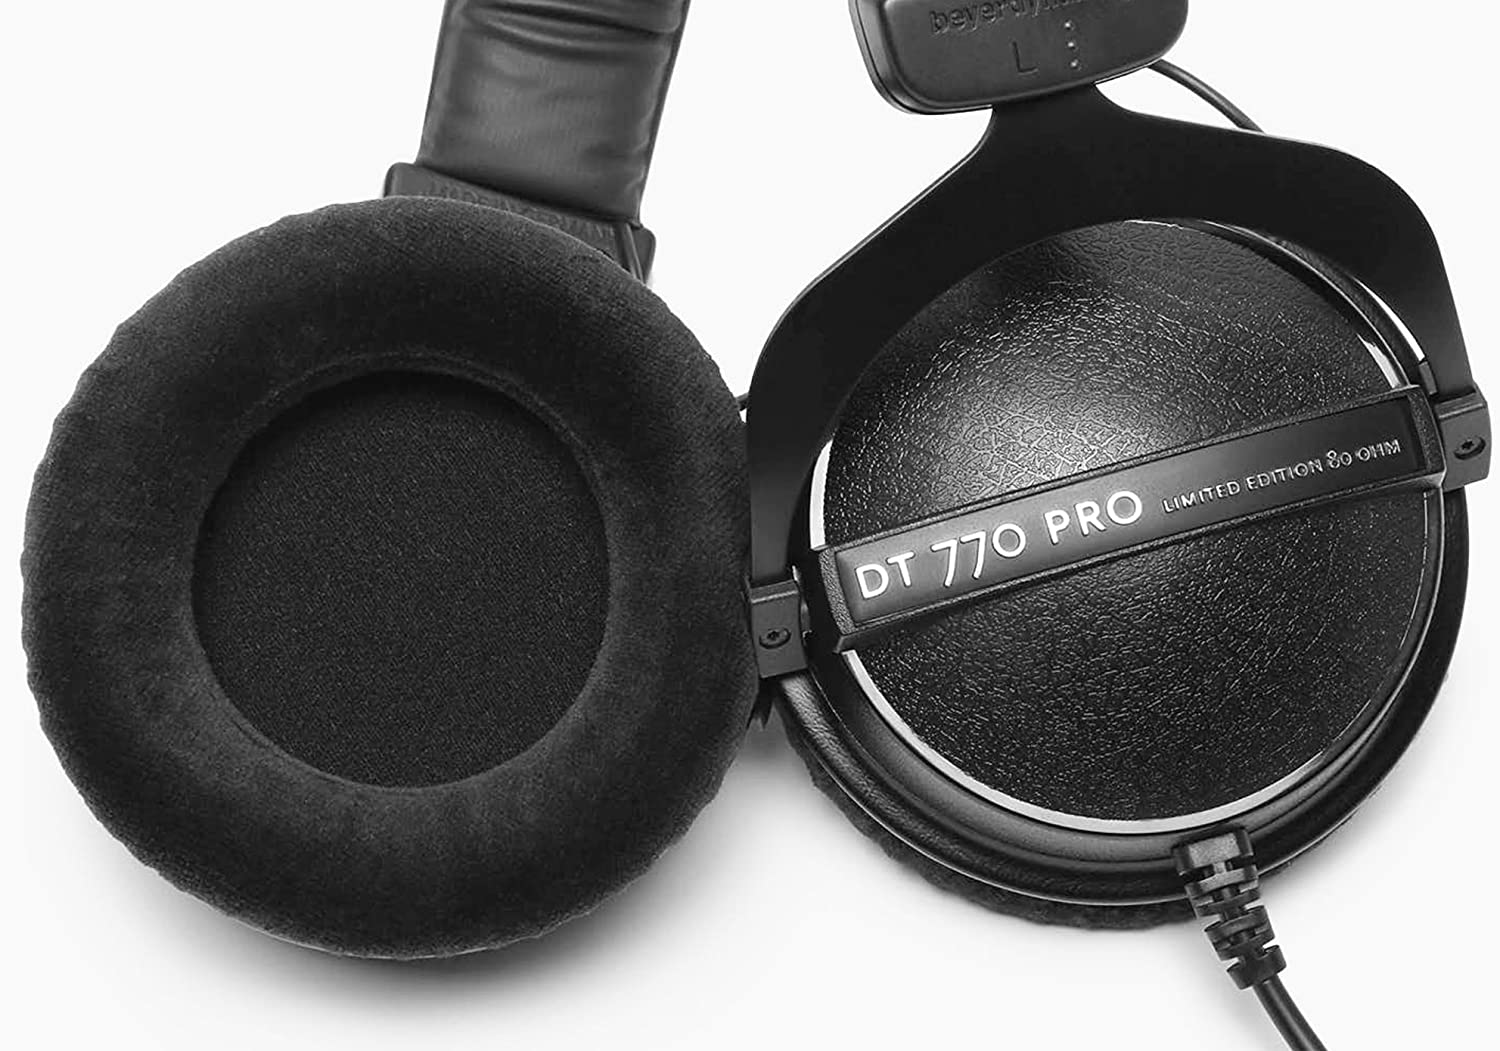 Enclosed Design beyerdynamic DT 770 PRO 32 Ohm Over-Ear Studio Headphones in Black Wired for Professional Sound in The Studio and on Mobile Devices Such as Tablets and Smartphones